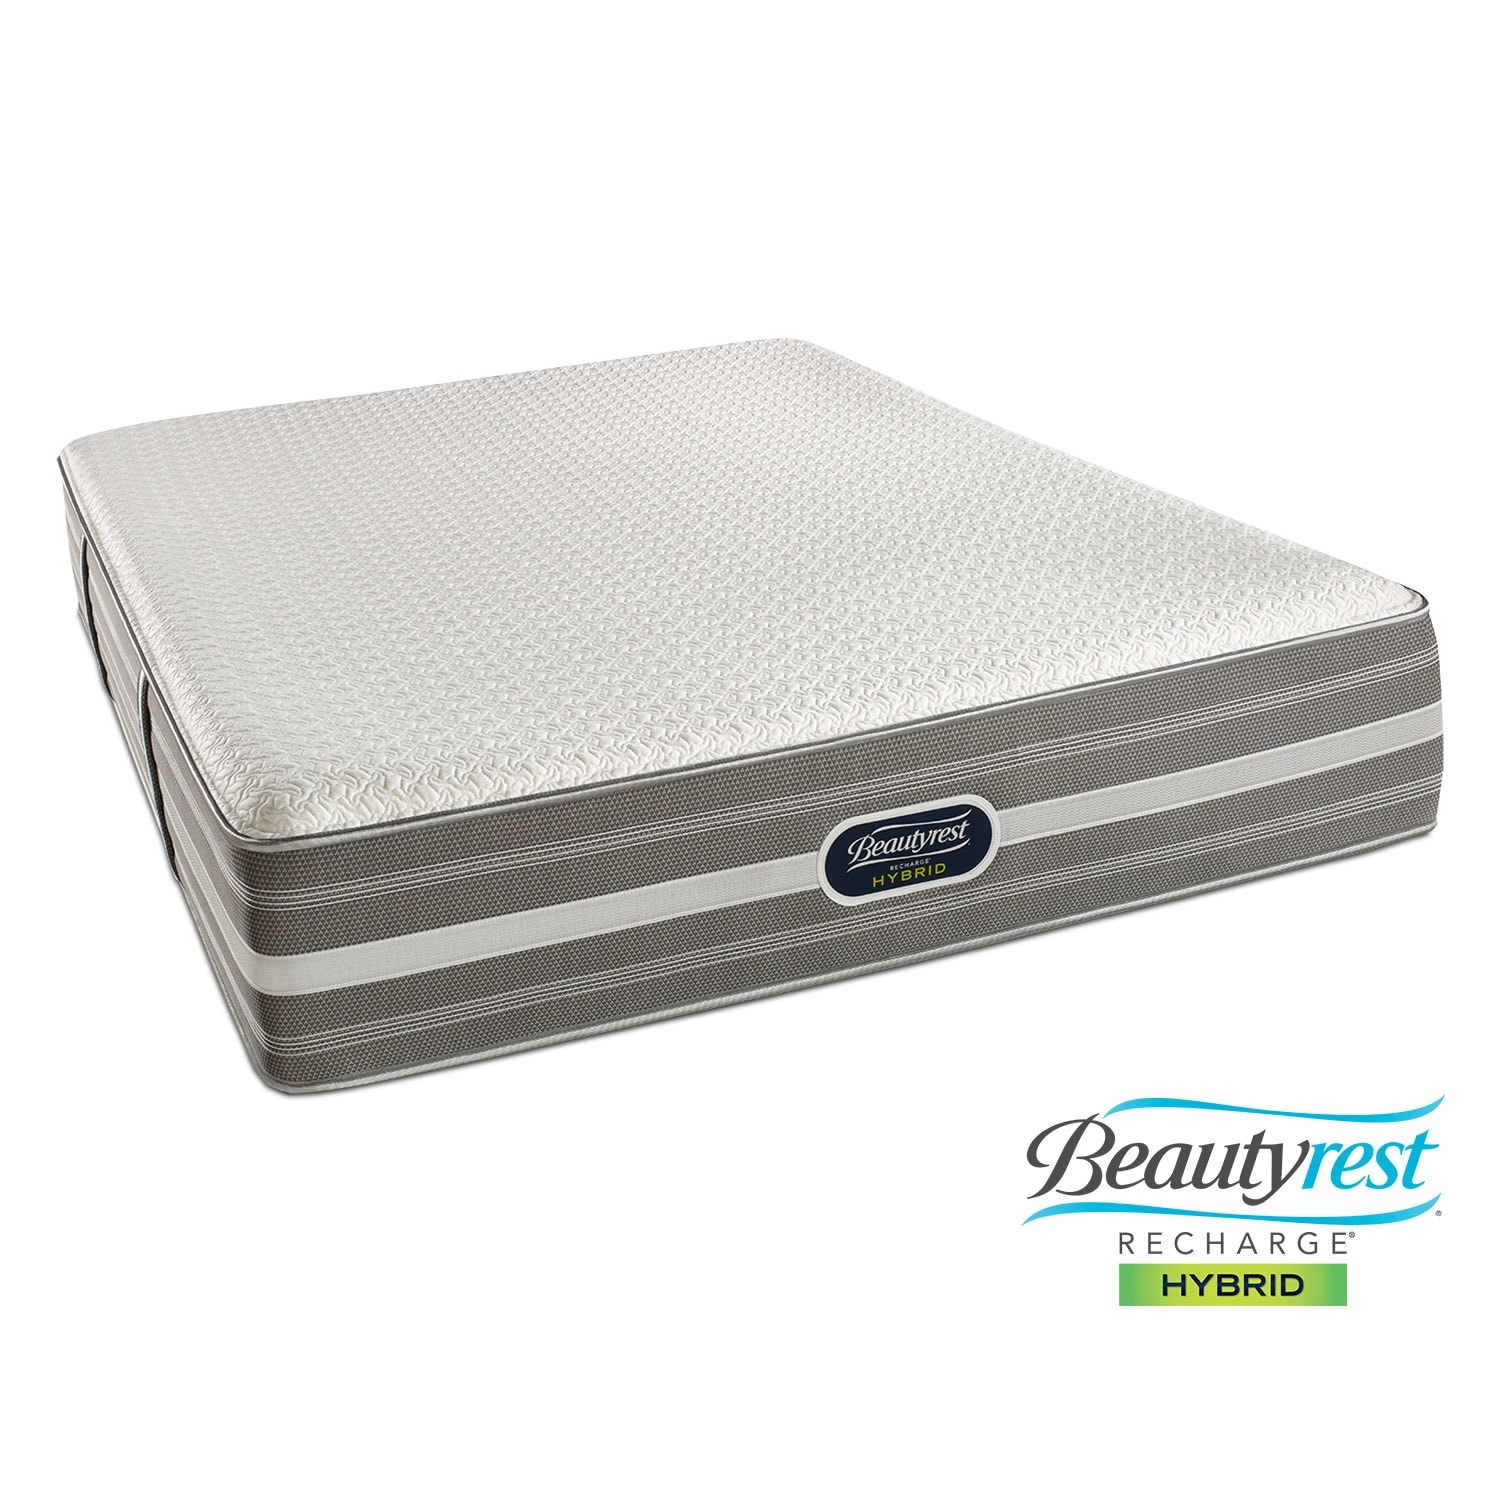 Mattresses and Bedding - Lamour Plush Queen Mattress